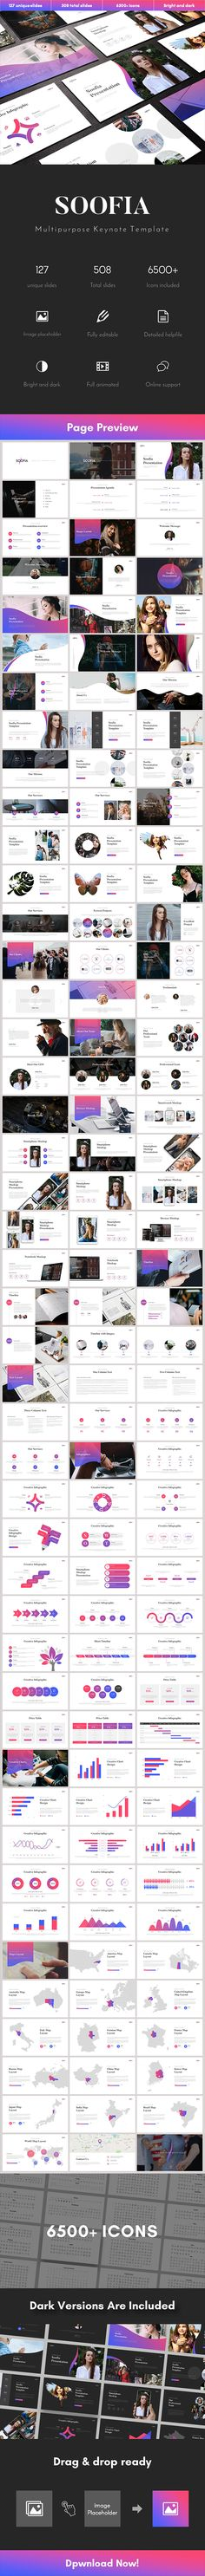 Soofia Multipurpose Keynote Template - Business Keynote Templates  Download link: https://graphicriver.net/item/soofia-multipurpose-keynote-template/22126117?ref=KlitVogli